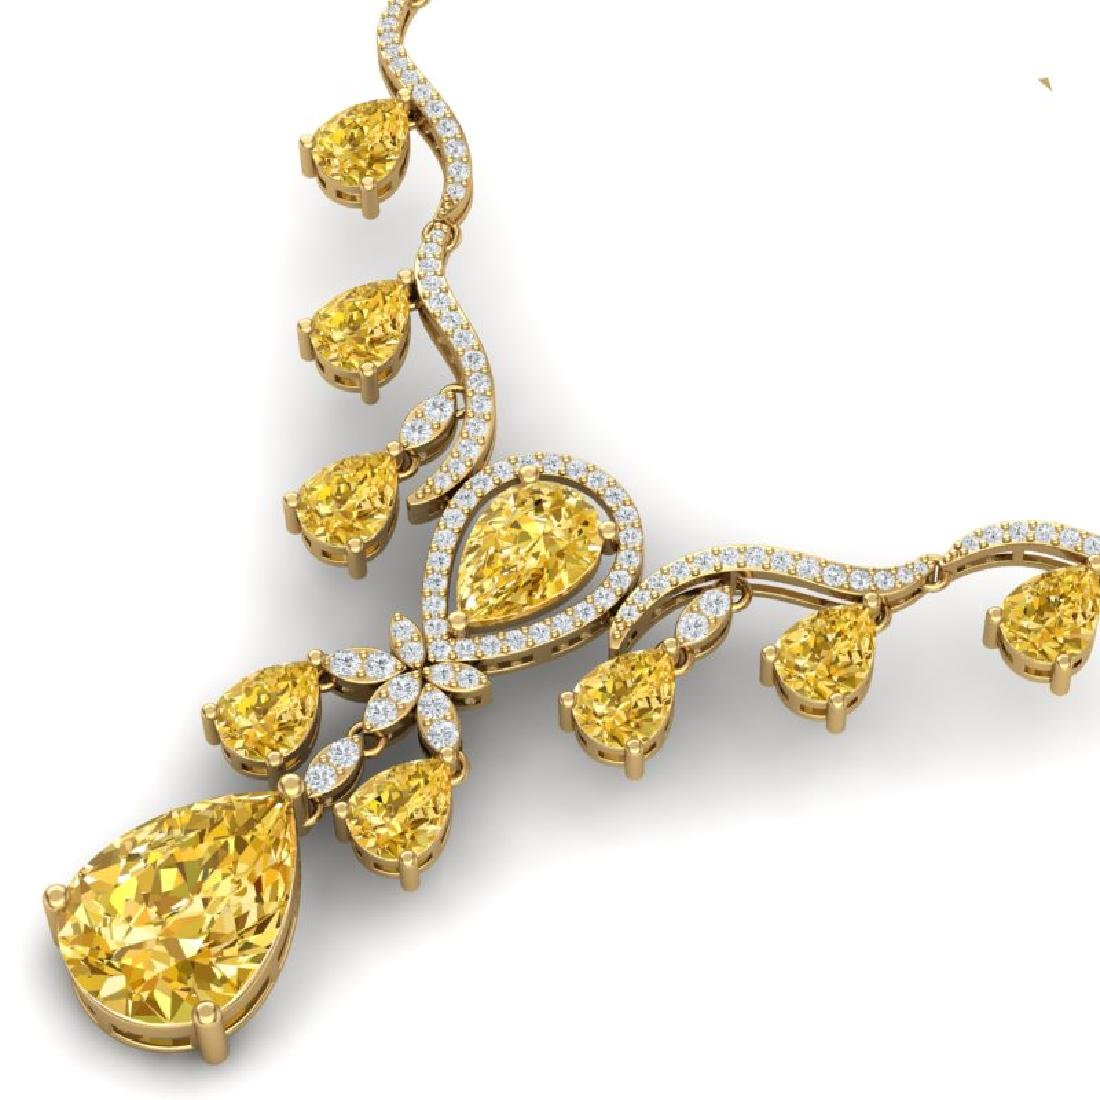 34.70 CTW Royalty Canary Citrine & VS Diamond Necklace - 2